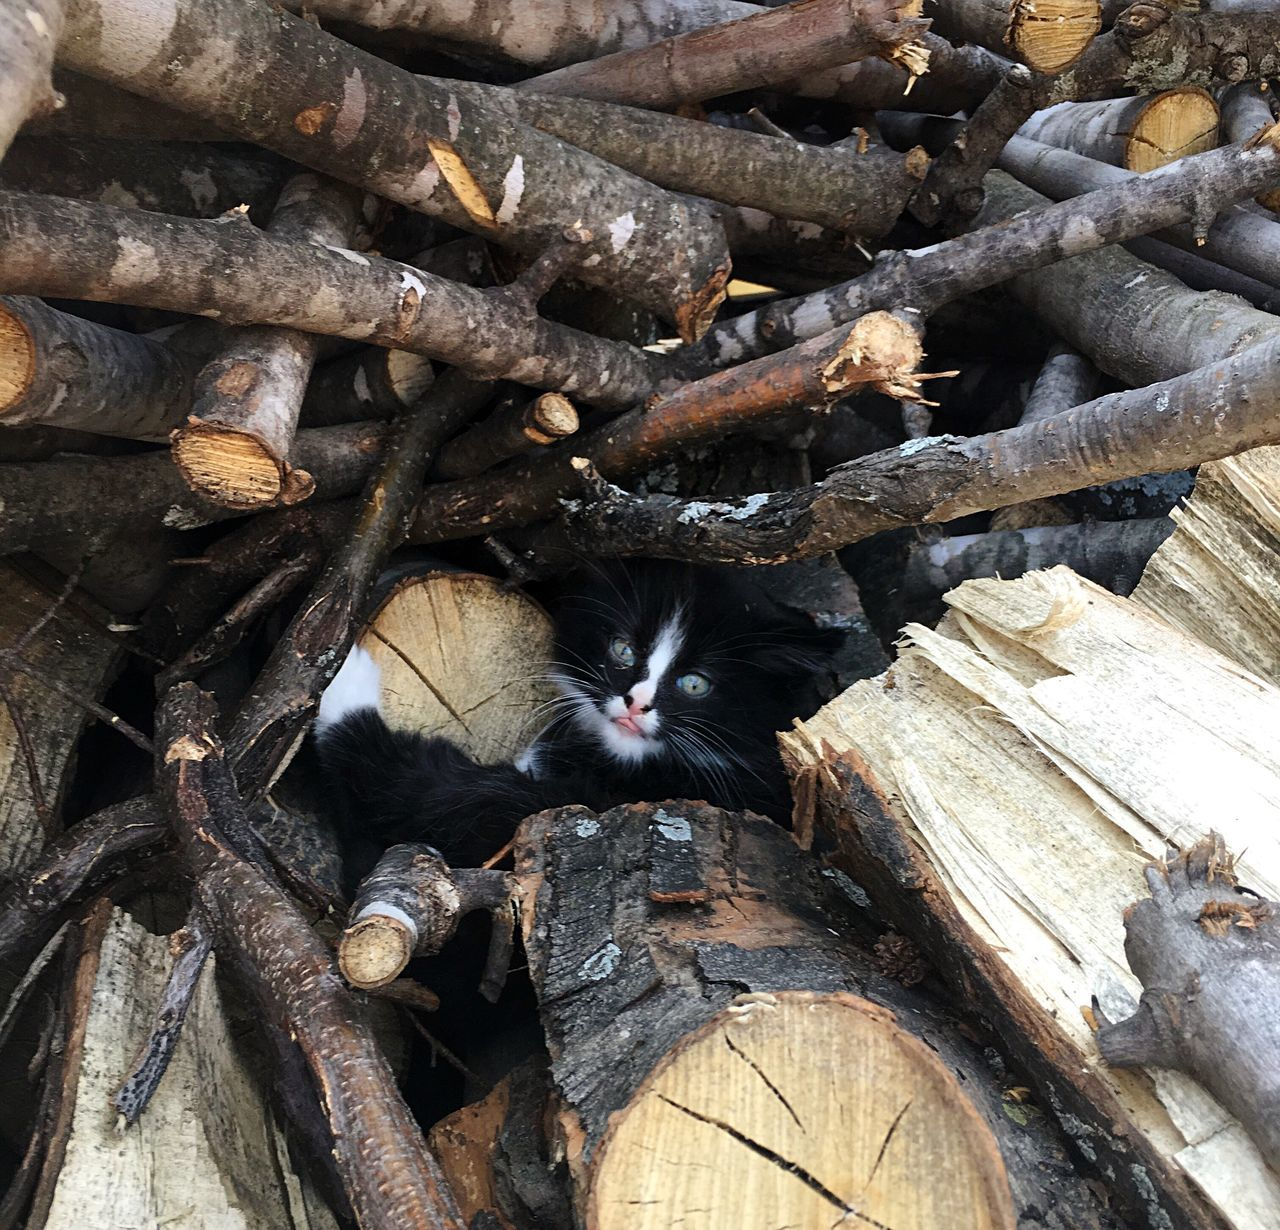 One of the baby kittens living in our wood pile. Kitten Kittens Feral Kitten Feral Cat Feralcat Feral Cats Wild Cat Wild Cats Wildcat Wildcats Kitty Kitties Kitty Love Kitty Cat Black And White Cat Kittycat Kitten 🐱 Kitty Cats  Kittylove Kittenoftheday Cat Woodpile Cats Stray Cat Stray Animal